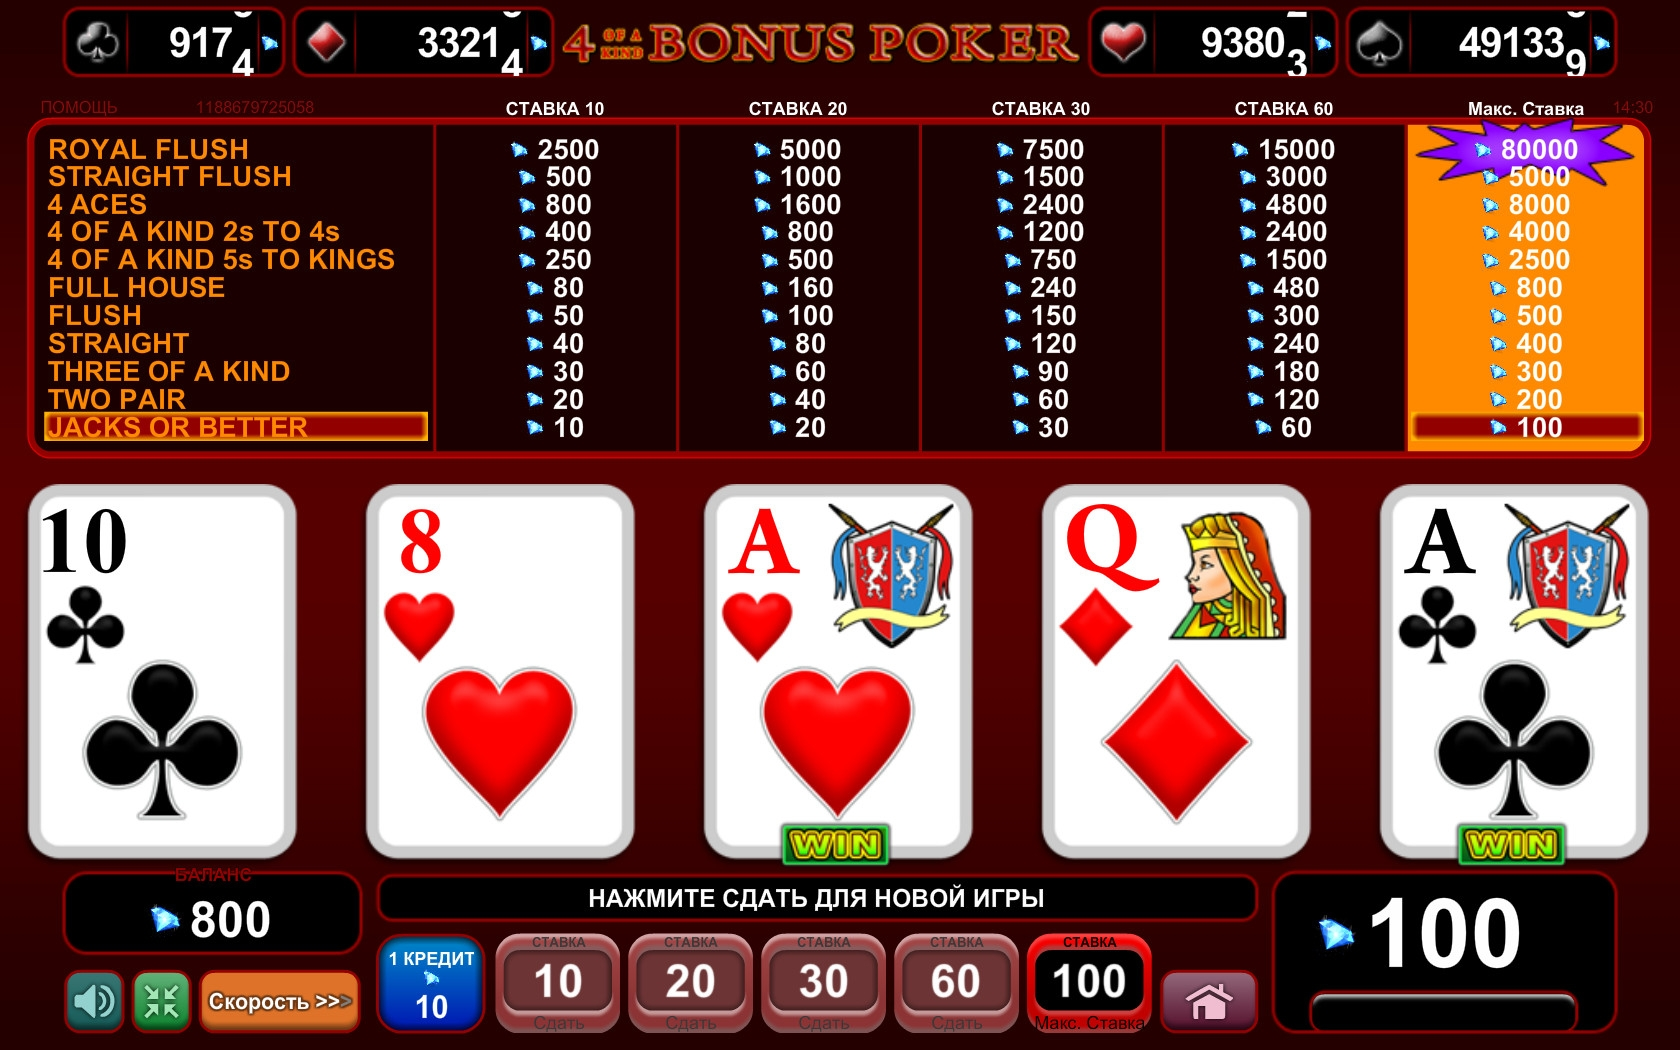 deposit online casino poker 4 of a kind